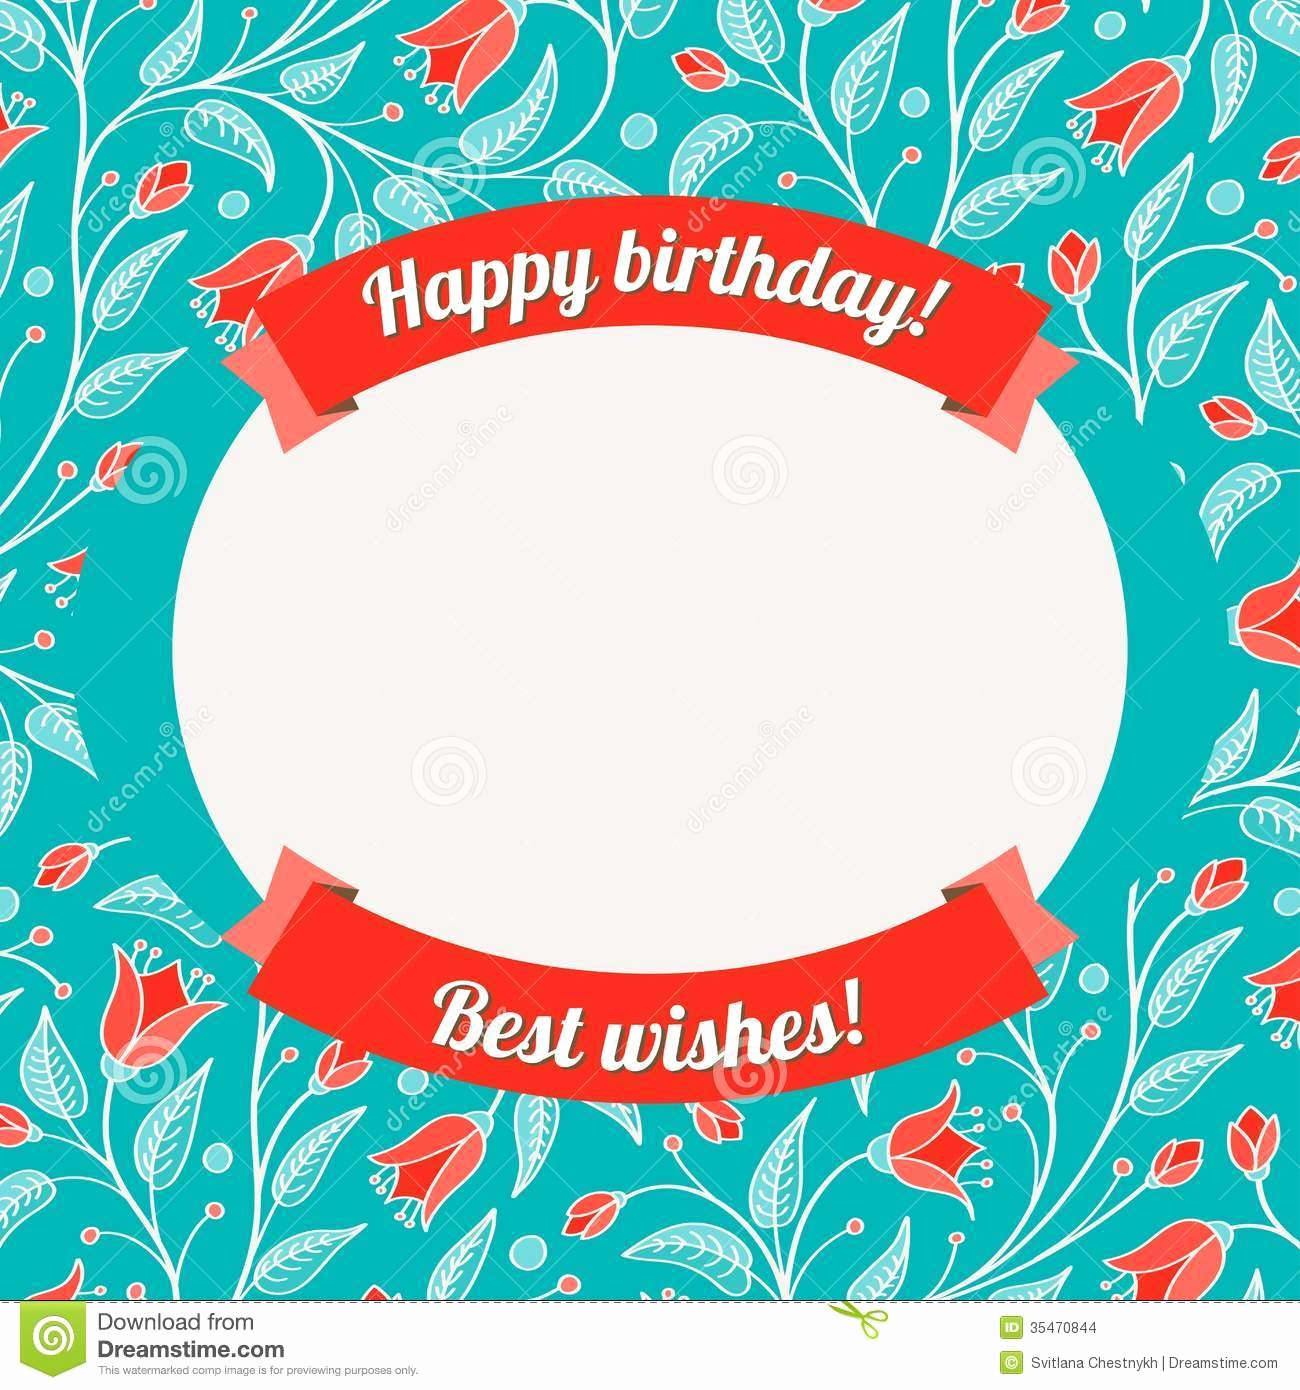 Microsoft Word Birthday Card Templates Lovely Card Birthday Card Template